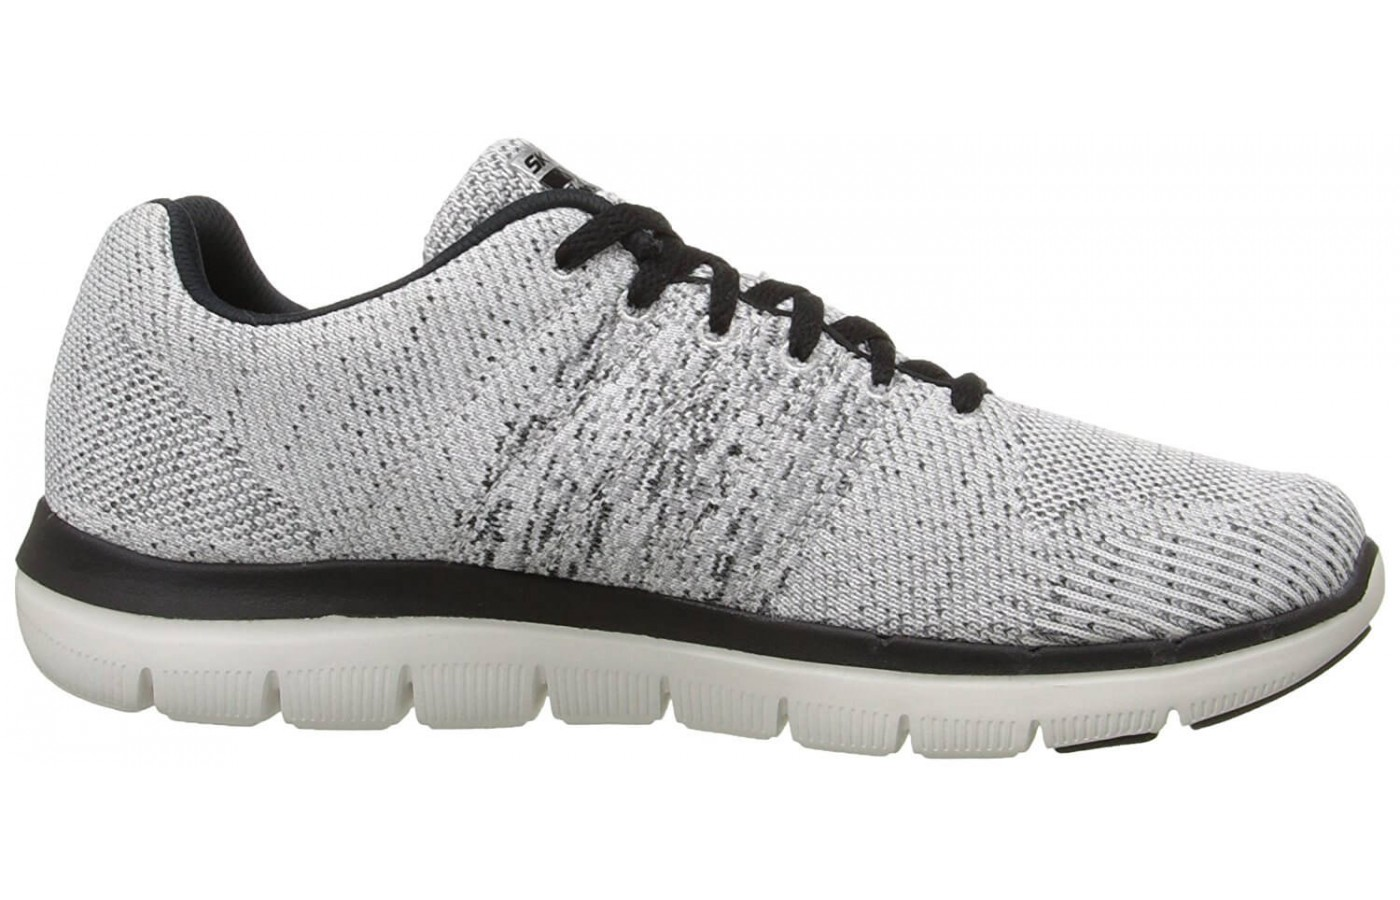 The lateral side of the Skechers Flex Advantage 2.0.